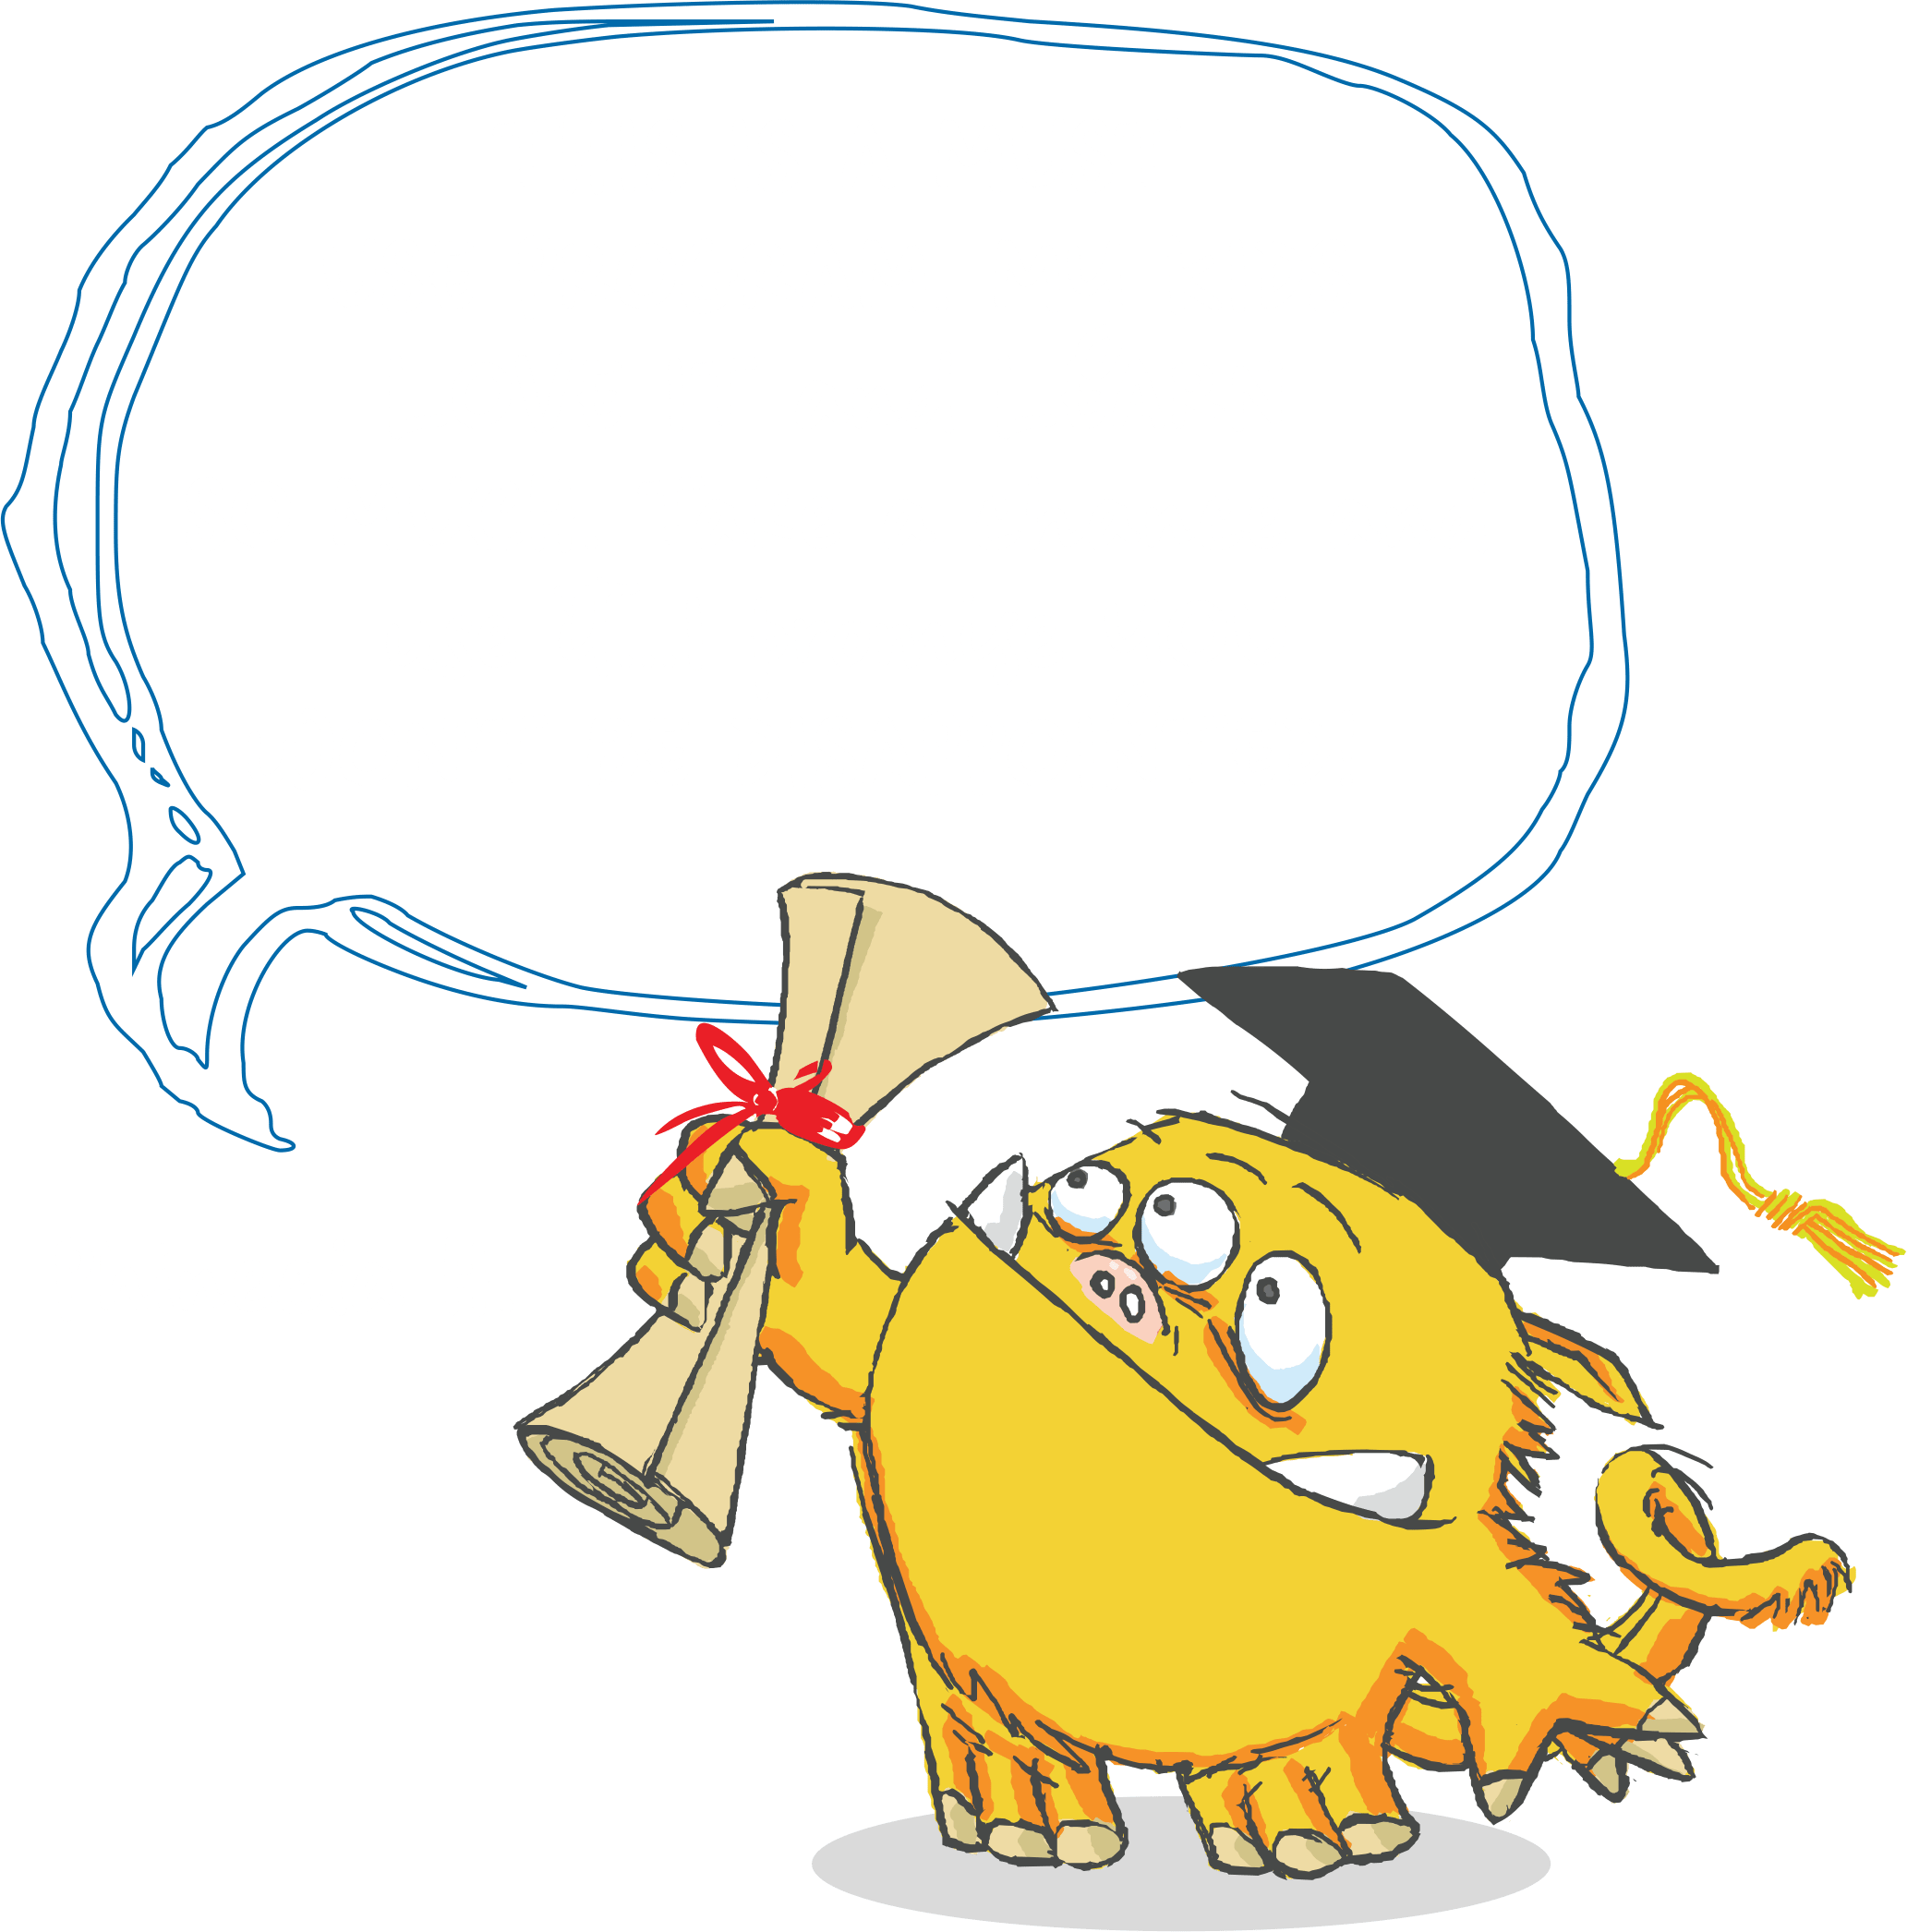 This is a must use program. My kids love it and learn so much. Take a chance and use it. I promise you won't be disappointed! Phinecia H.